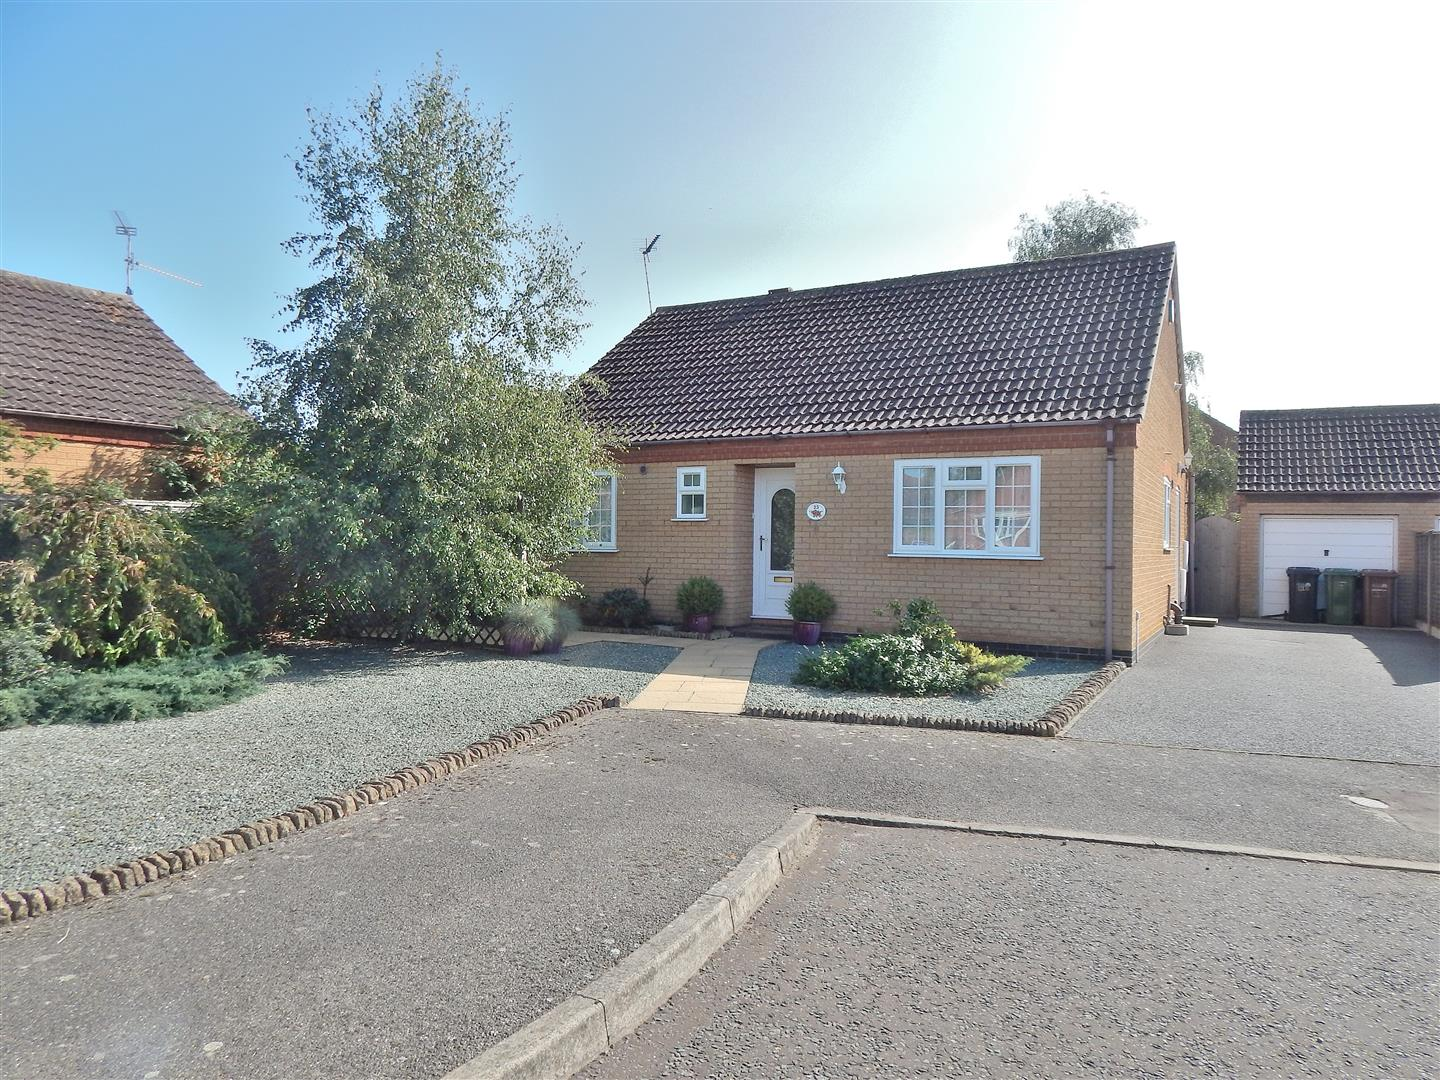 3 bed detached bungalow for sale in King's Lynn, PE31 6UU  - Property Image 1